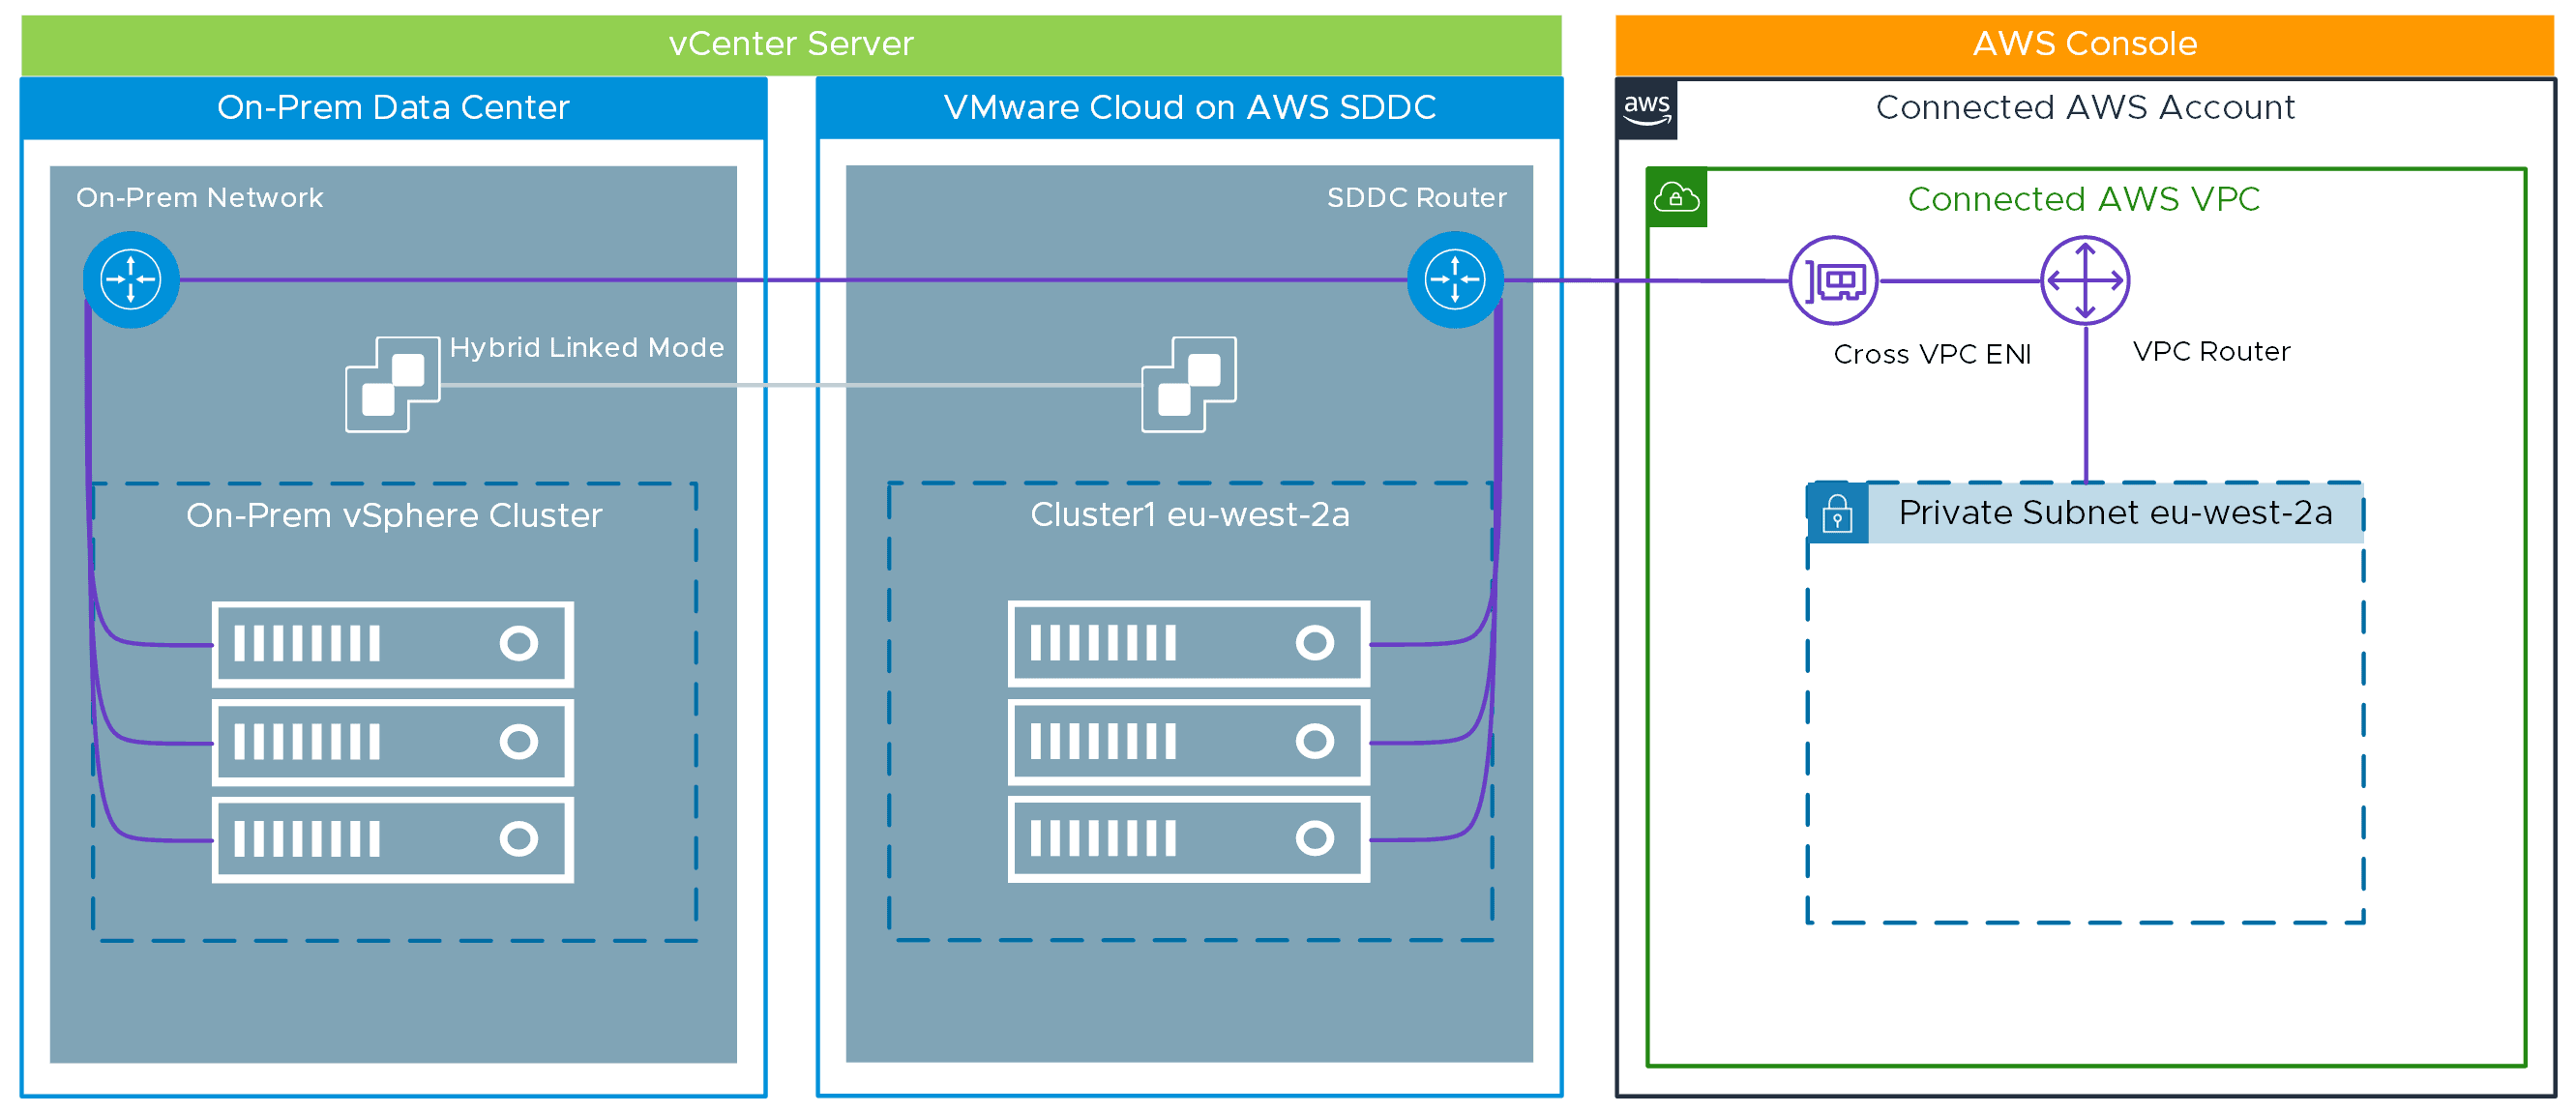 vCenter Servers on-premises and in AWS in Hybrid Linked Mode